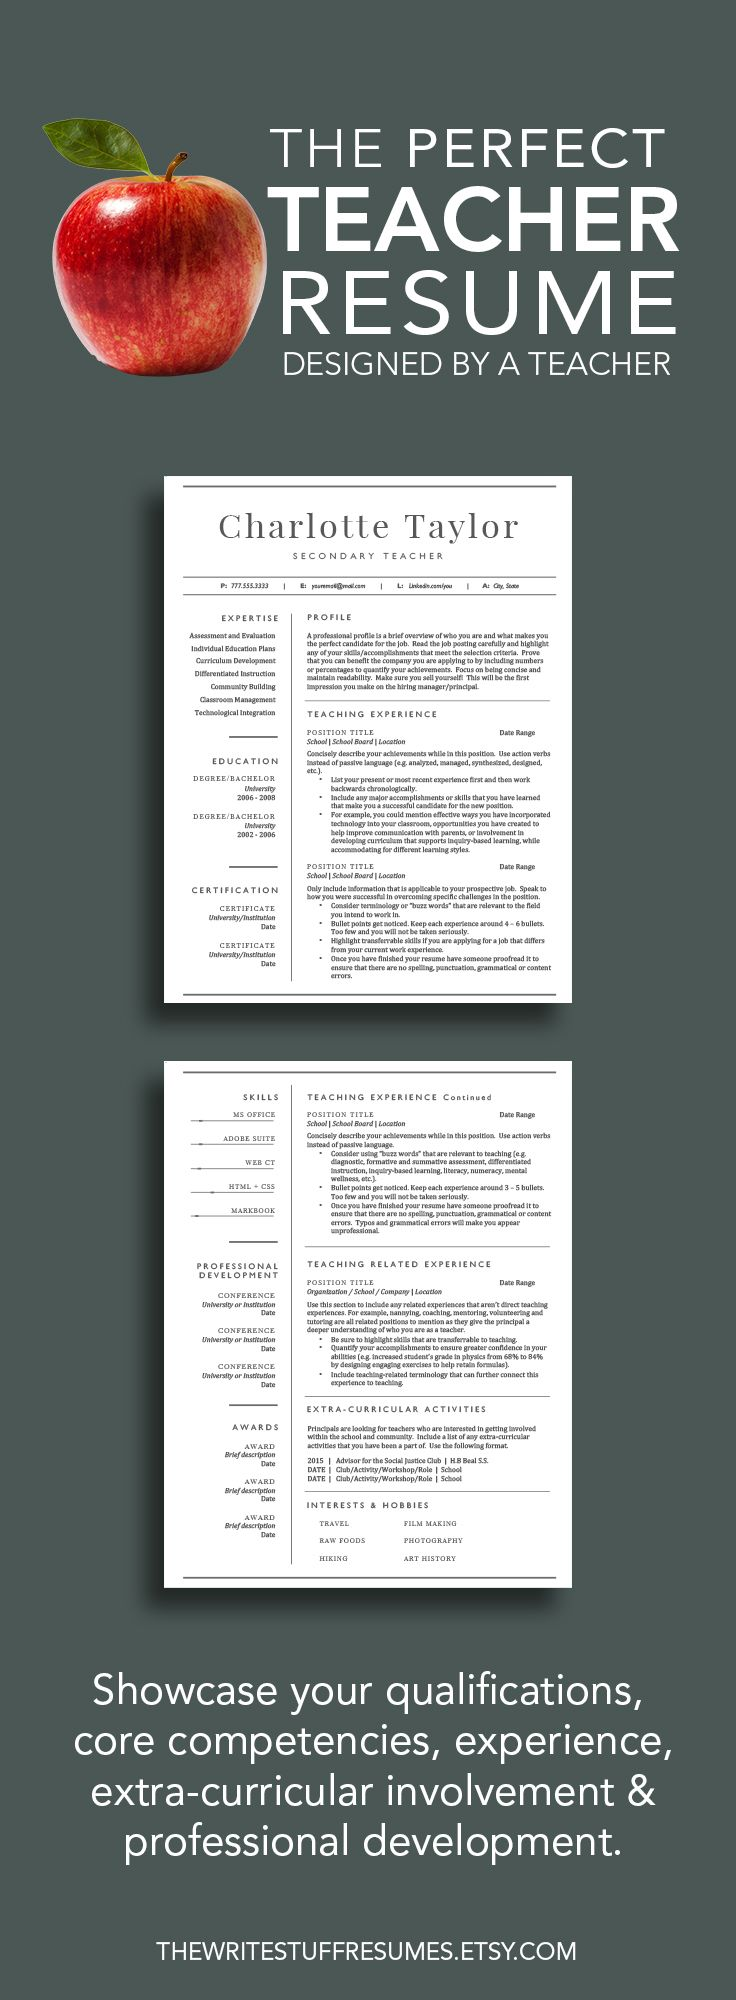 2 page teacher resume template for word includes cover letter